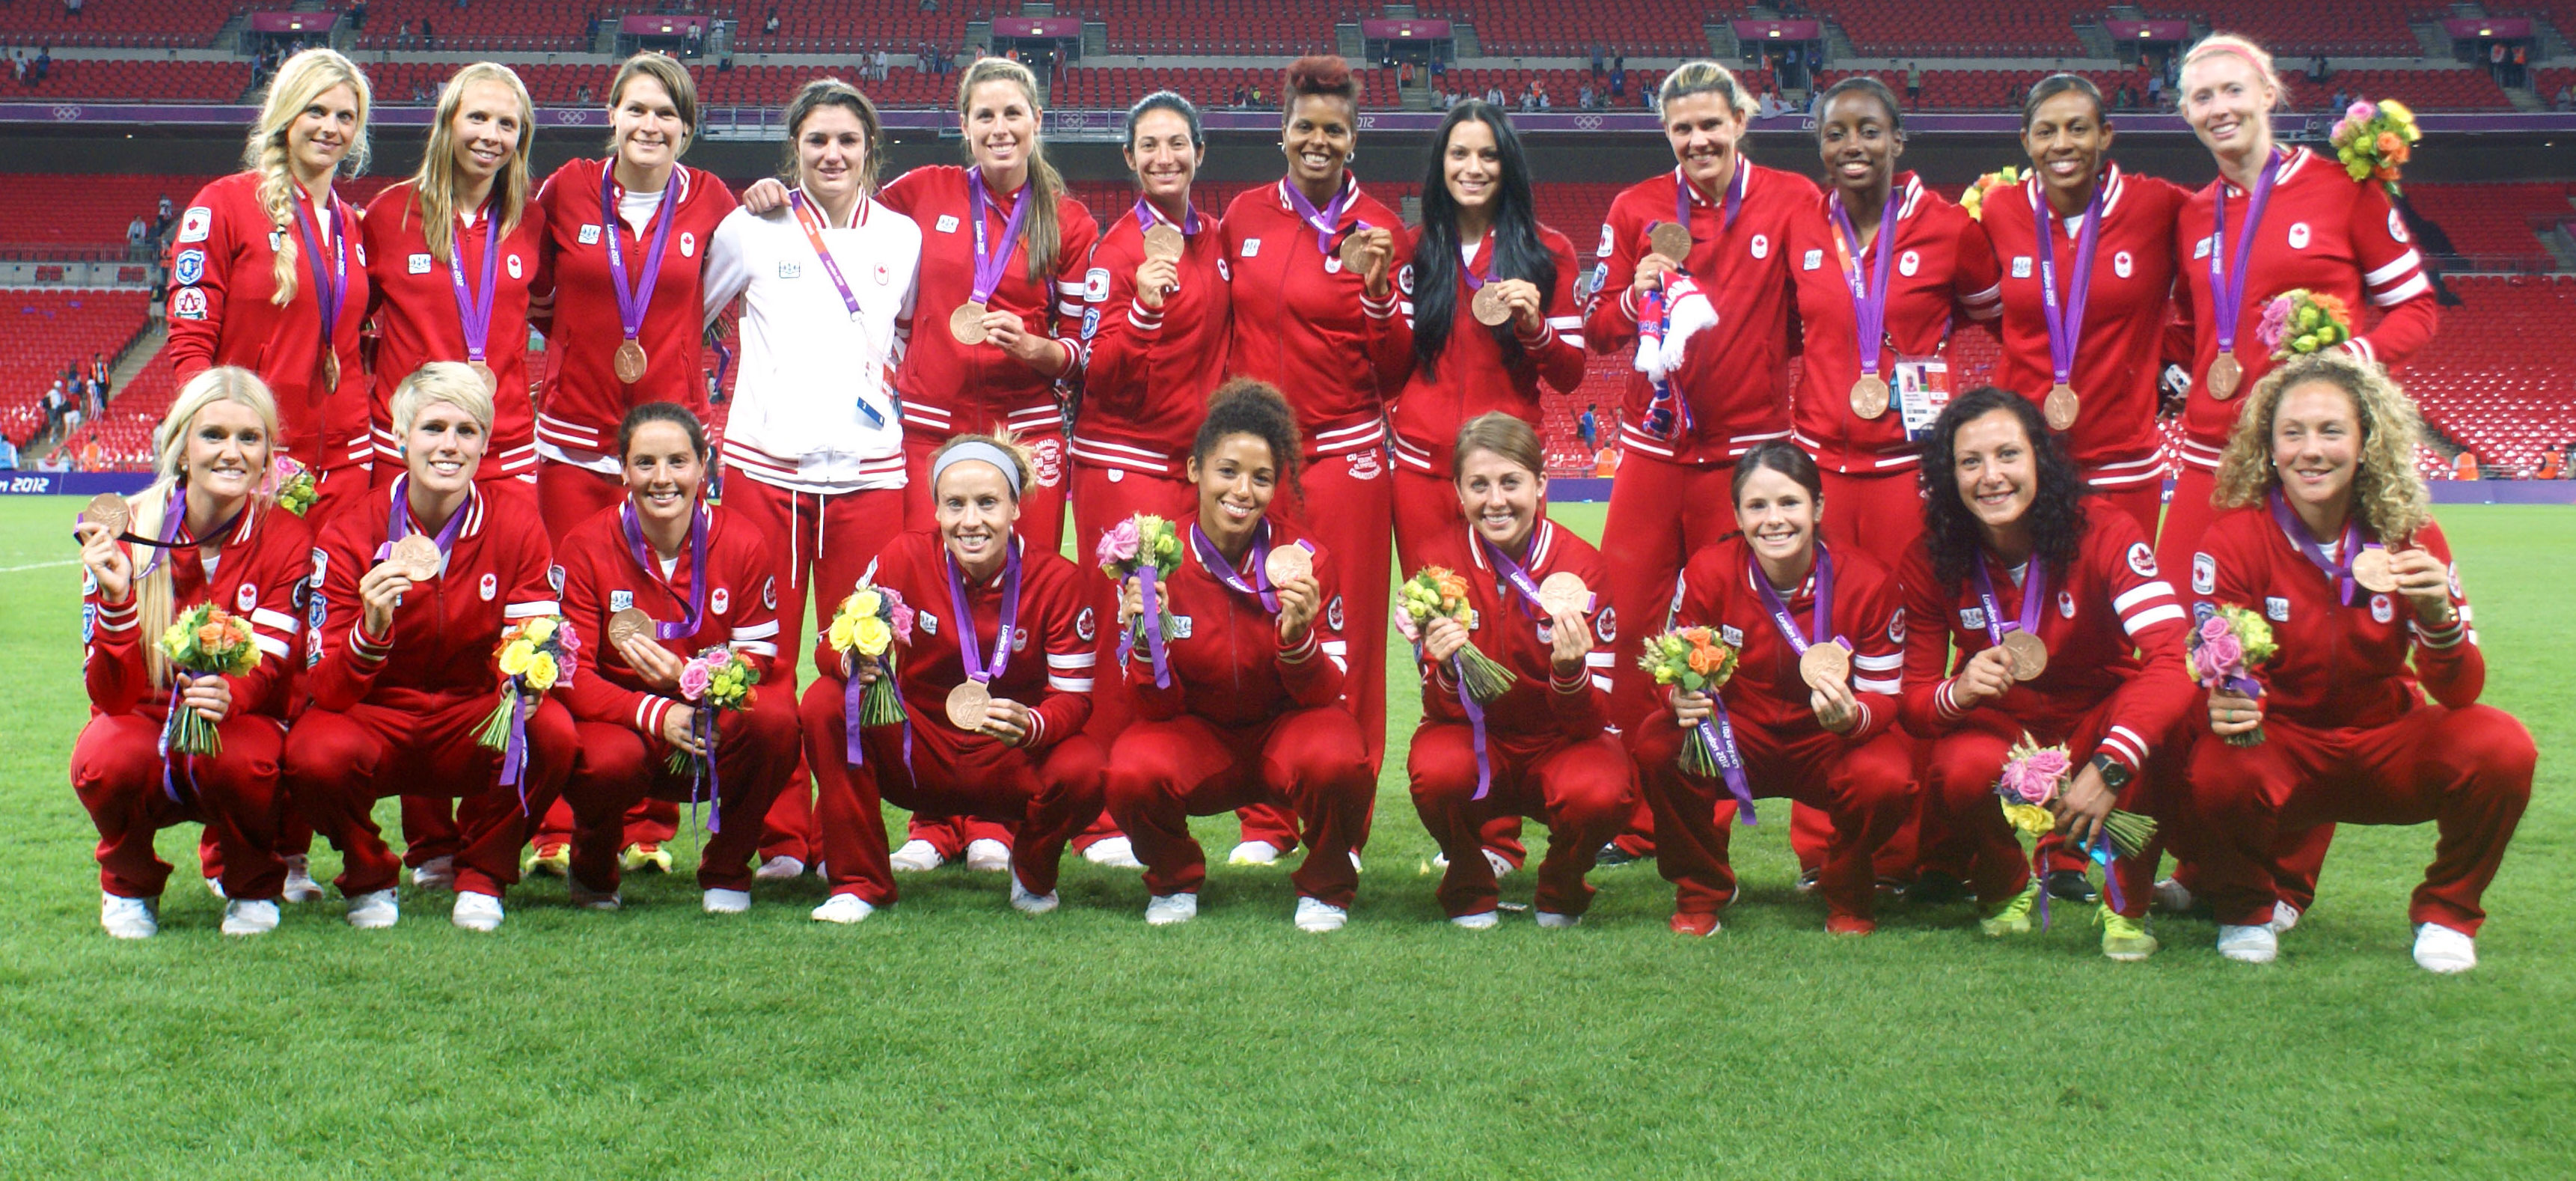 CanWNT's London 2012 squad inducted to Canadian Olympic Hall of Fame